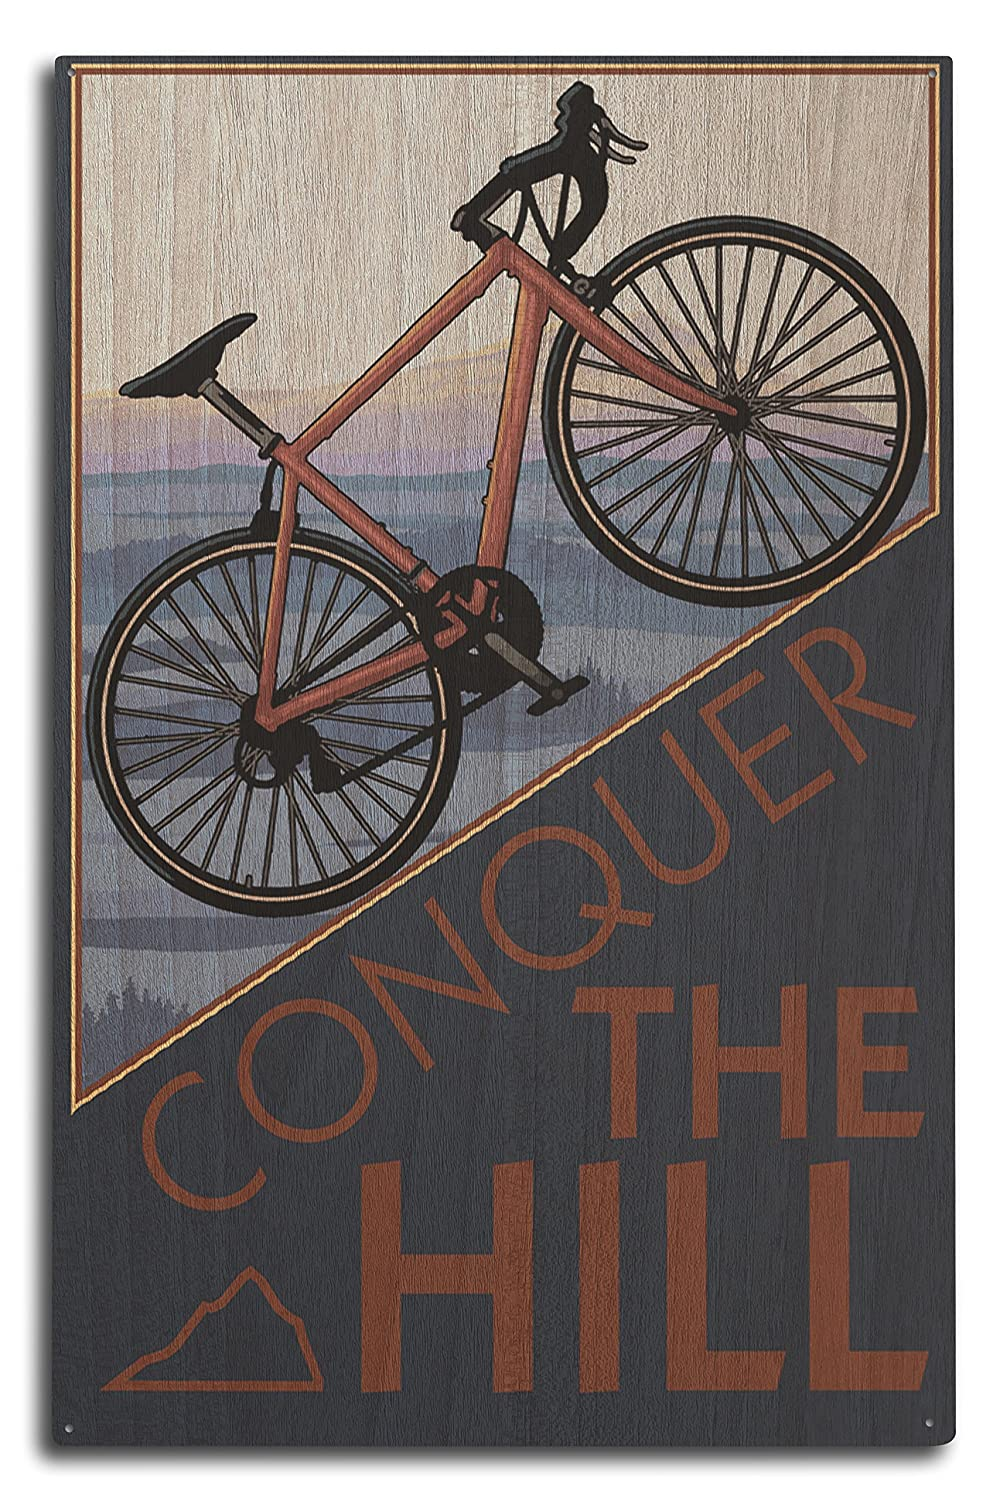 Conquer the Hill – Mountain Bike 10 x 15 Wood Sign LANT-31360-10x15W B07365417Z 10 x 15 Wood Sign10 x 15 Wood Sign